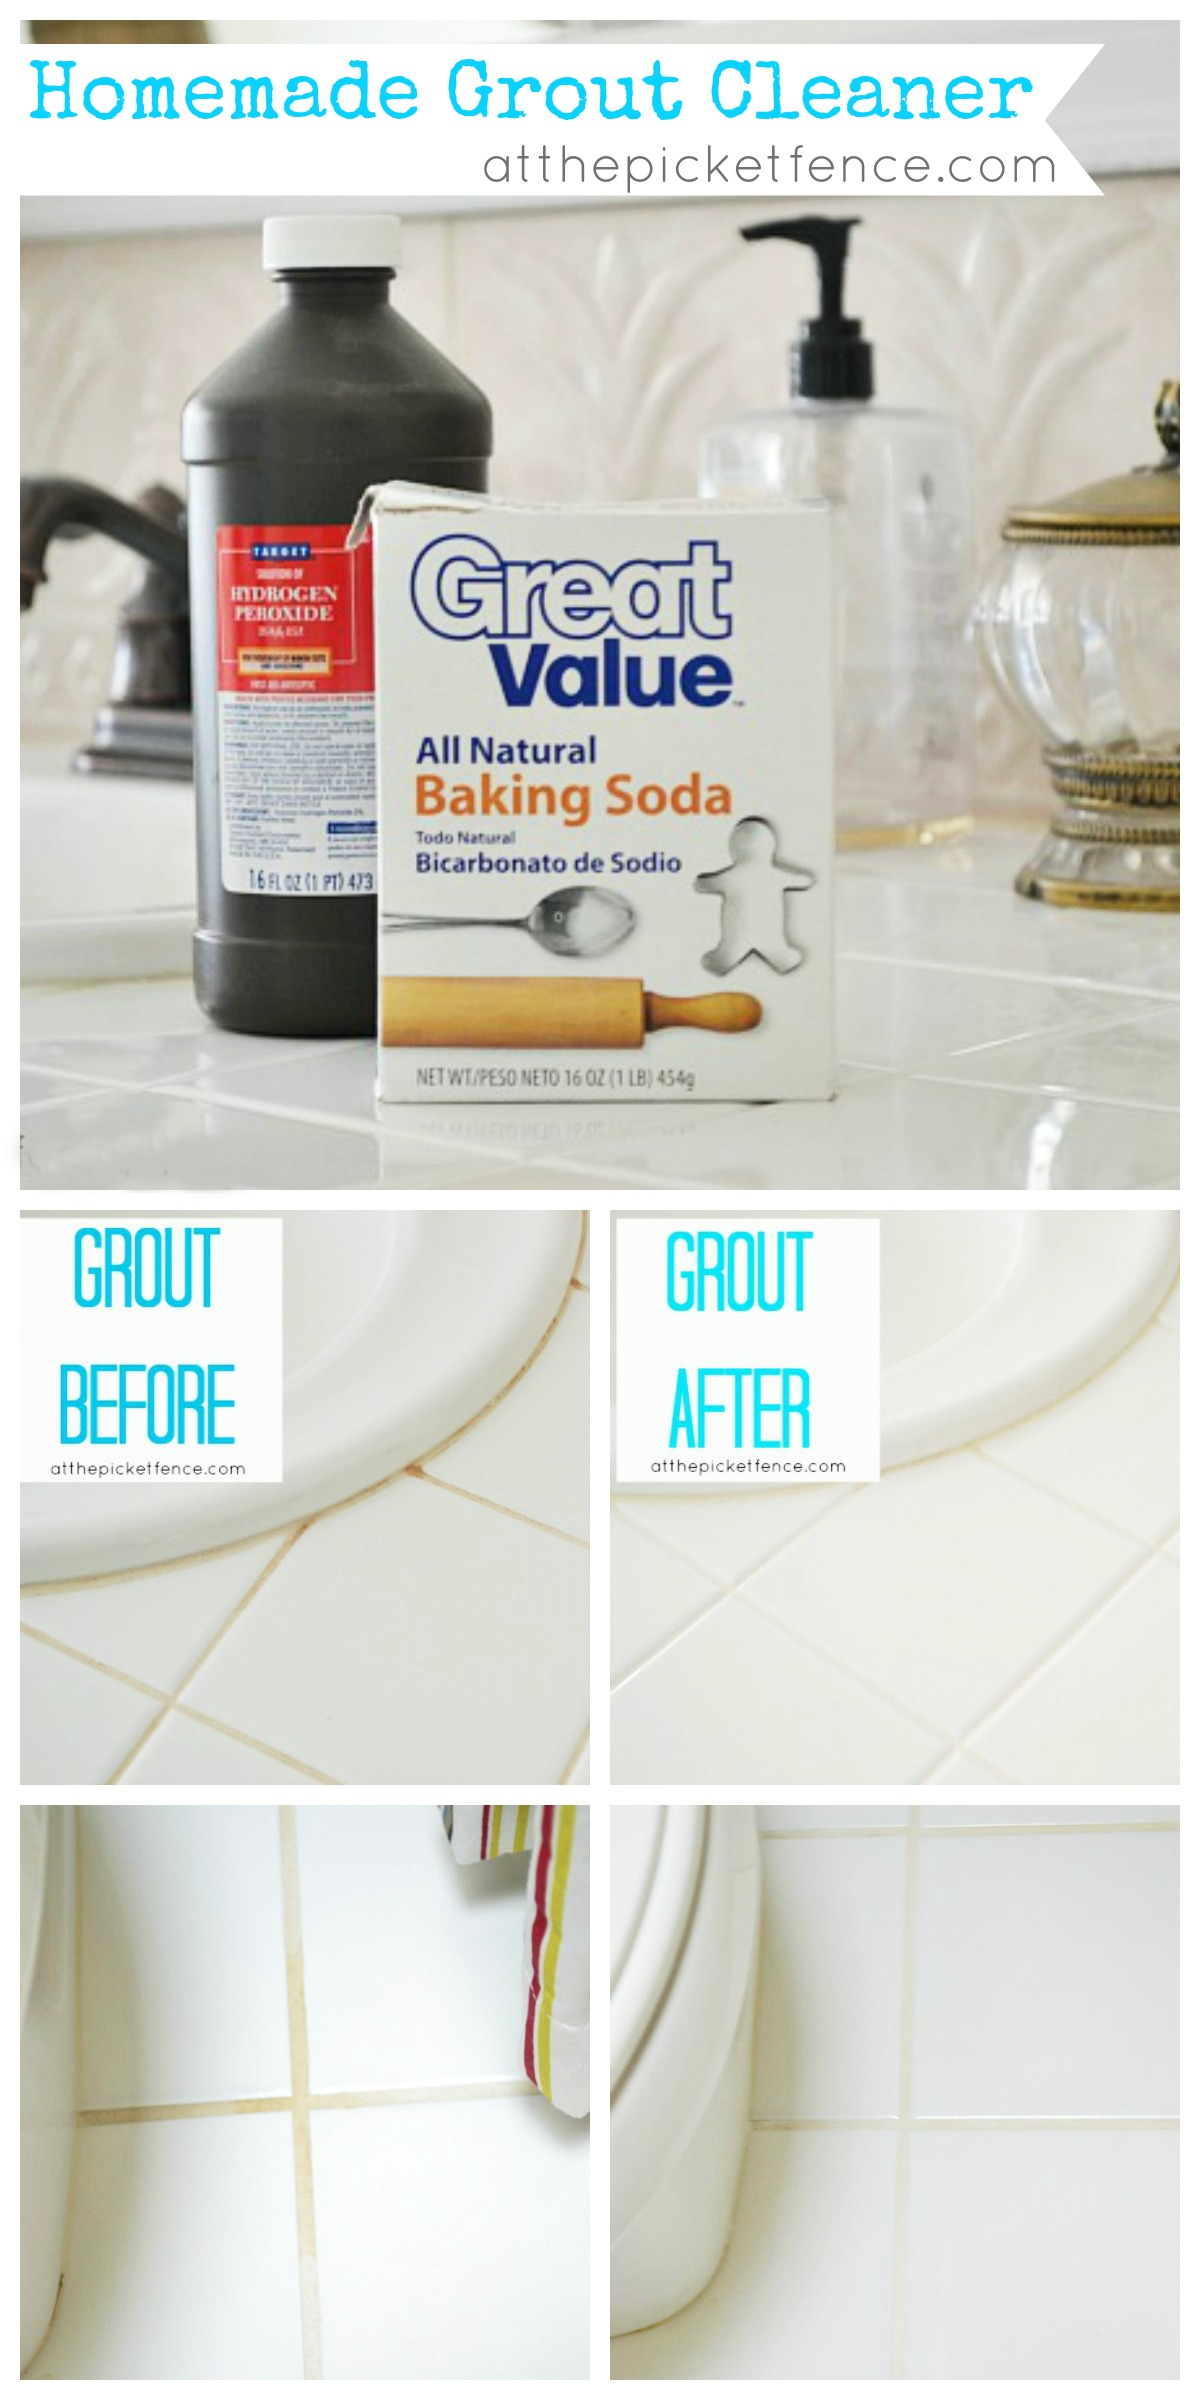 Hydrogen peroxide bathroom cleaner - Homemade Grout Cleaner